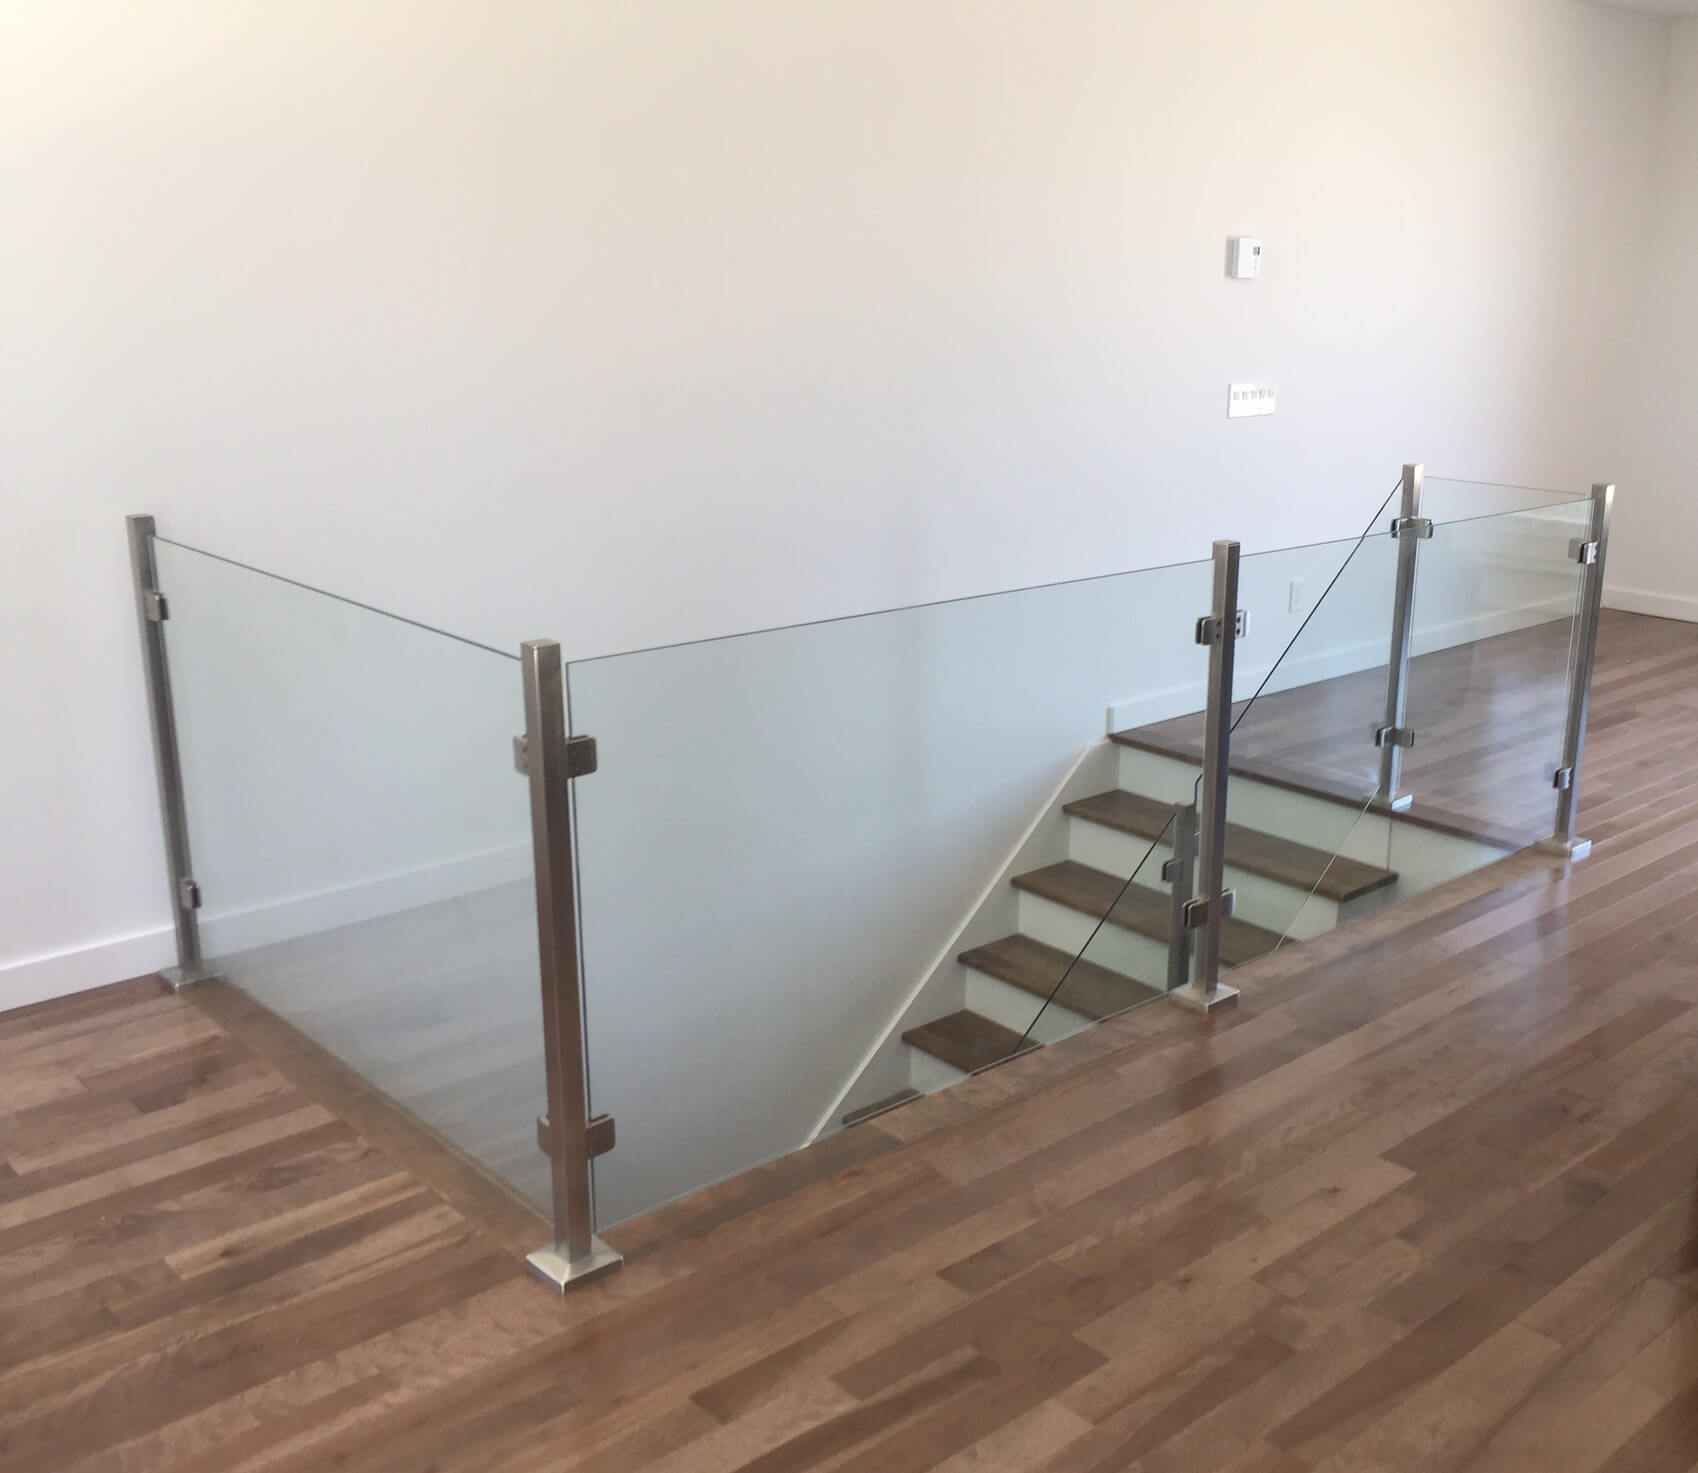 10mm glass railing with square stainless steel post